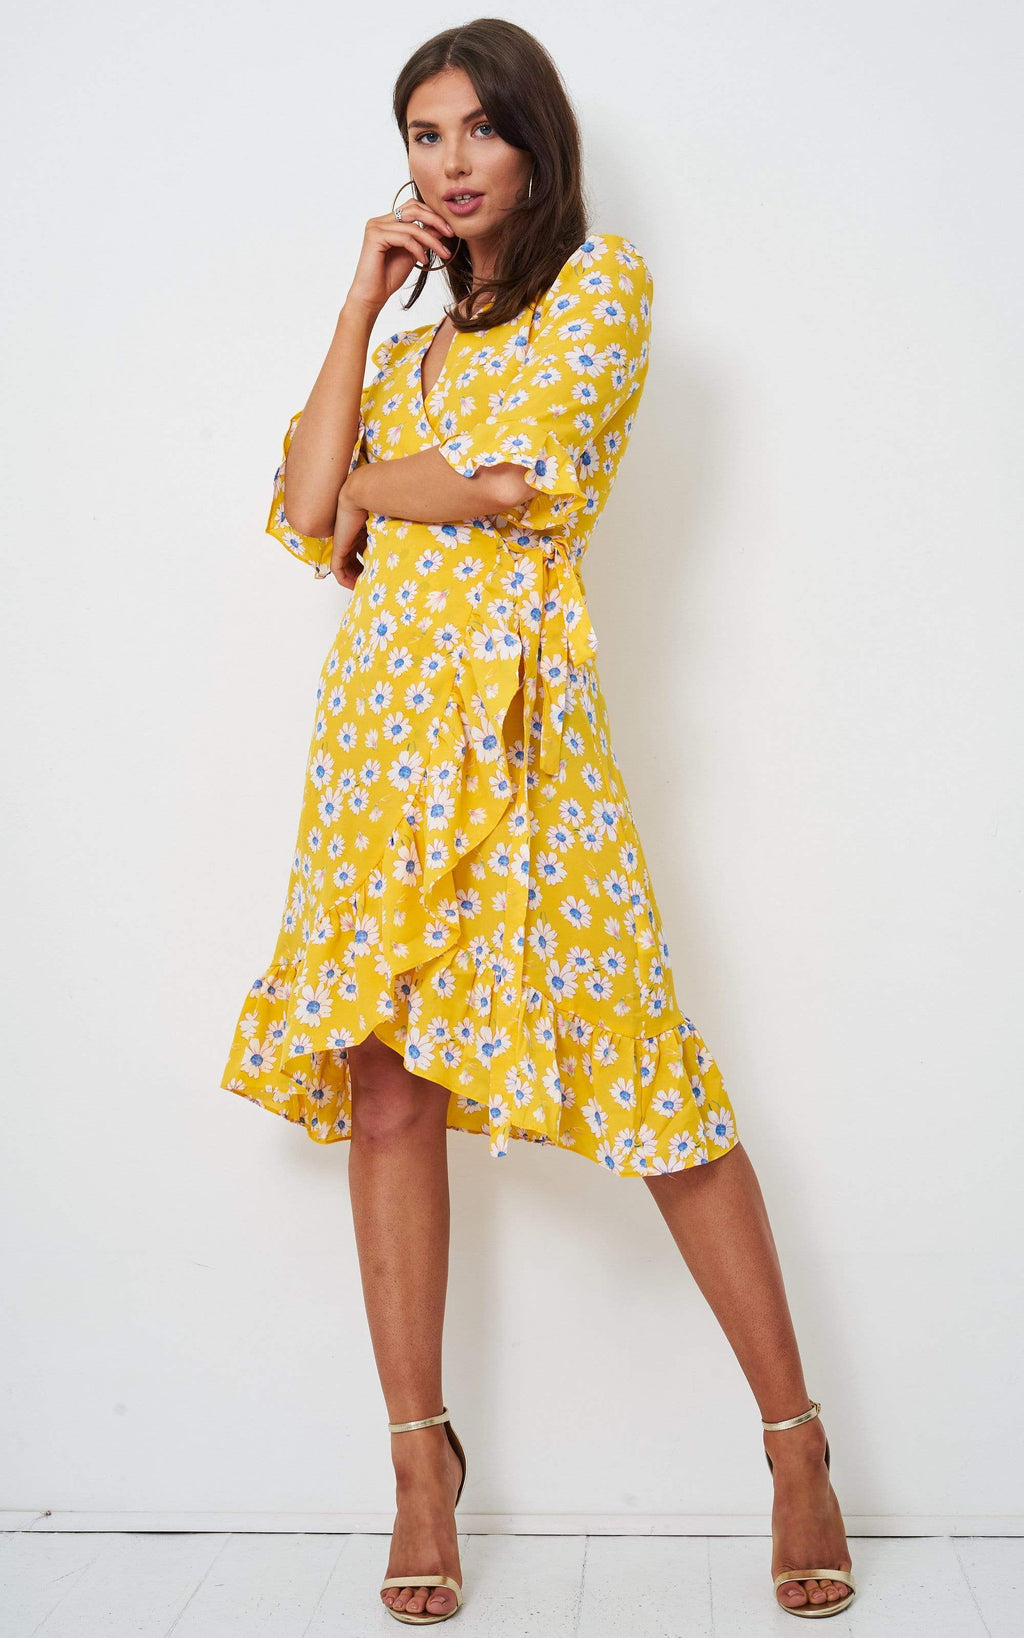 Aerin Yellow Floral Wrap Dress - love frontrow